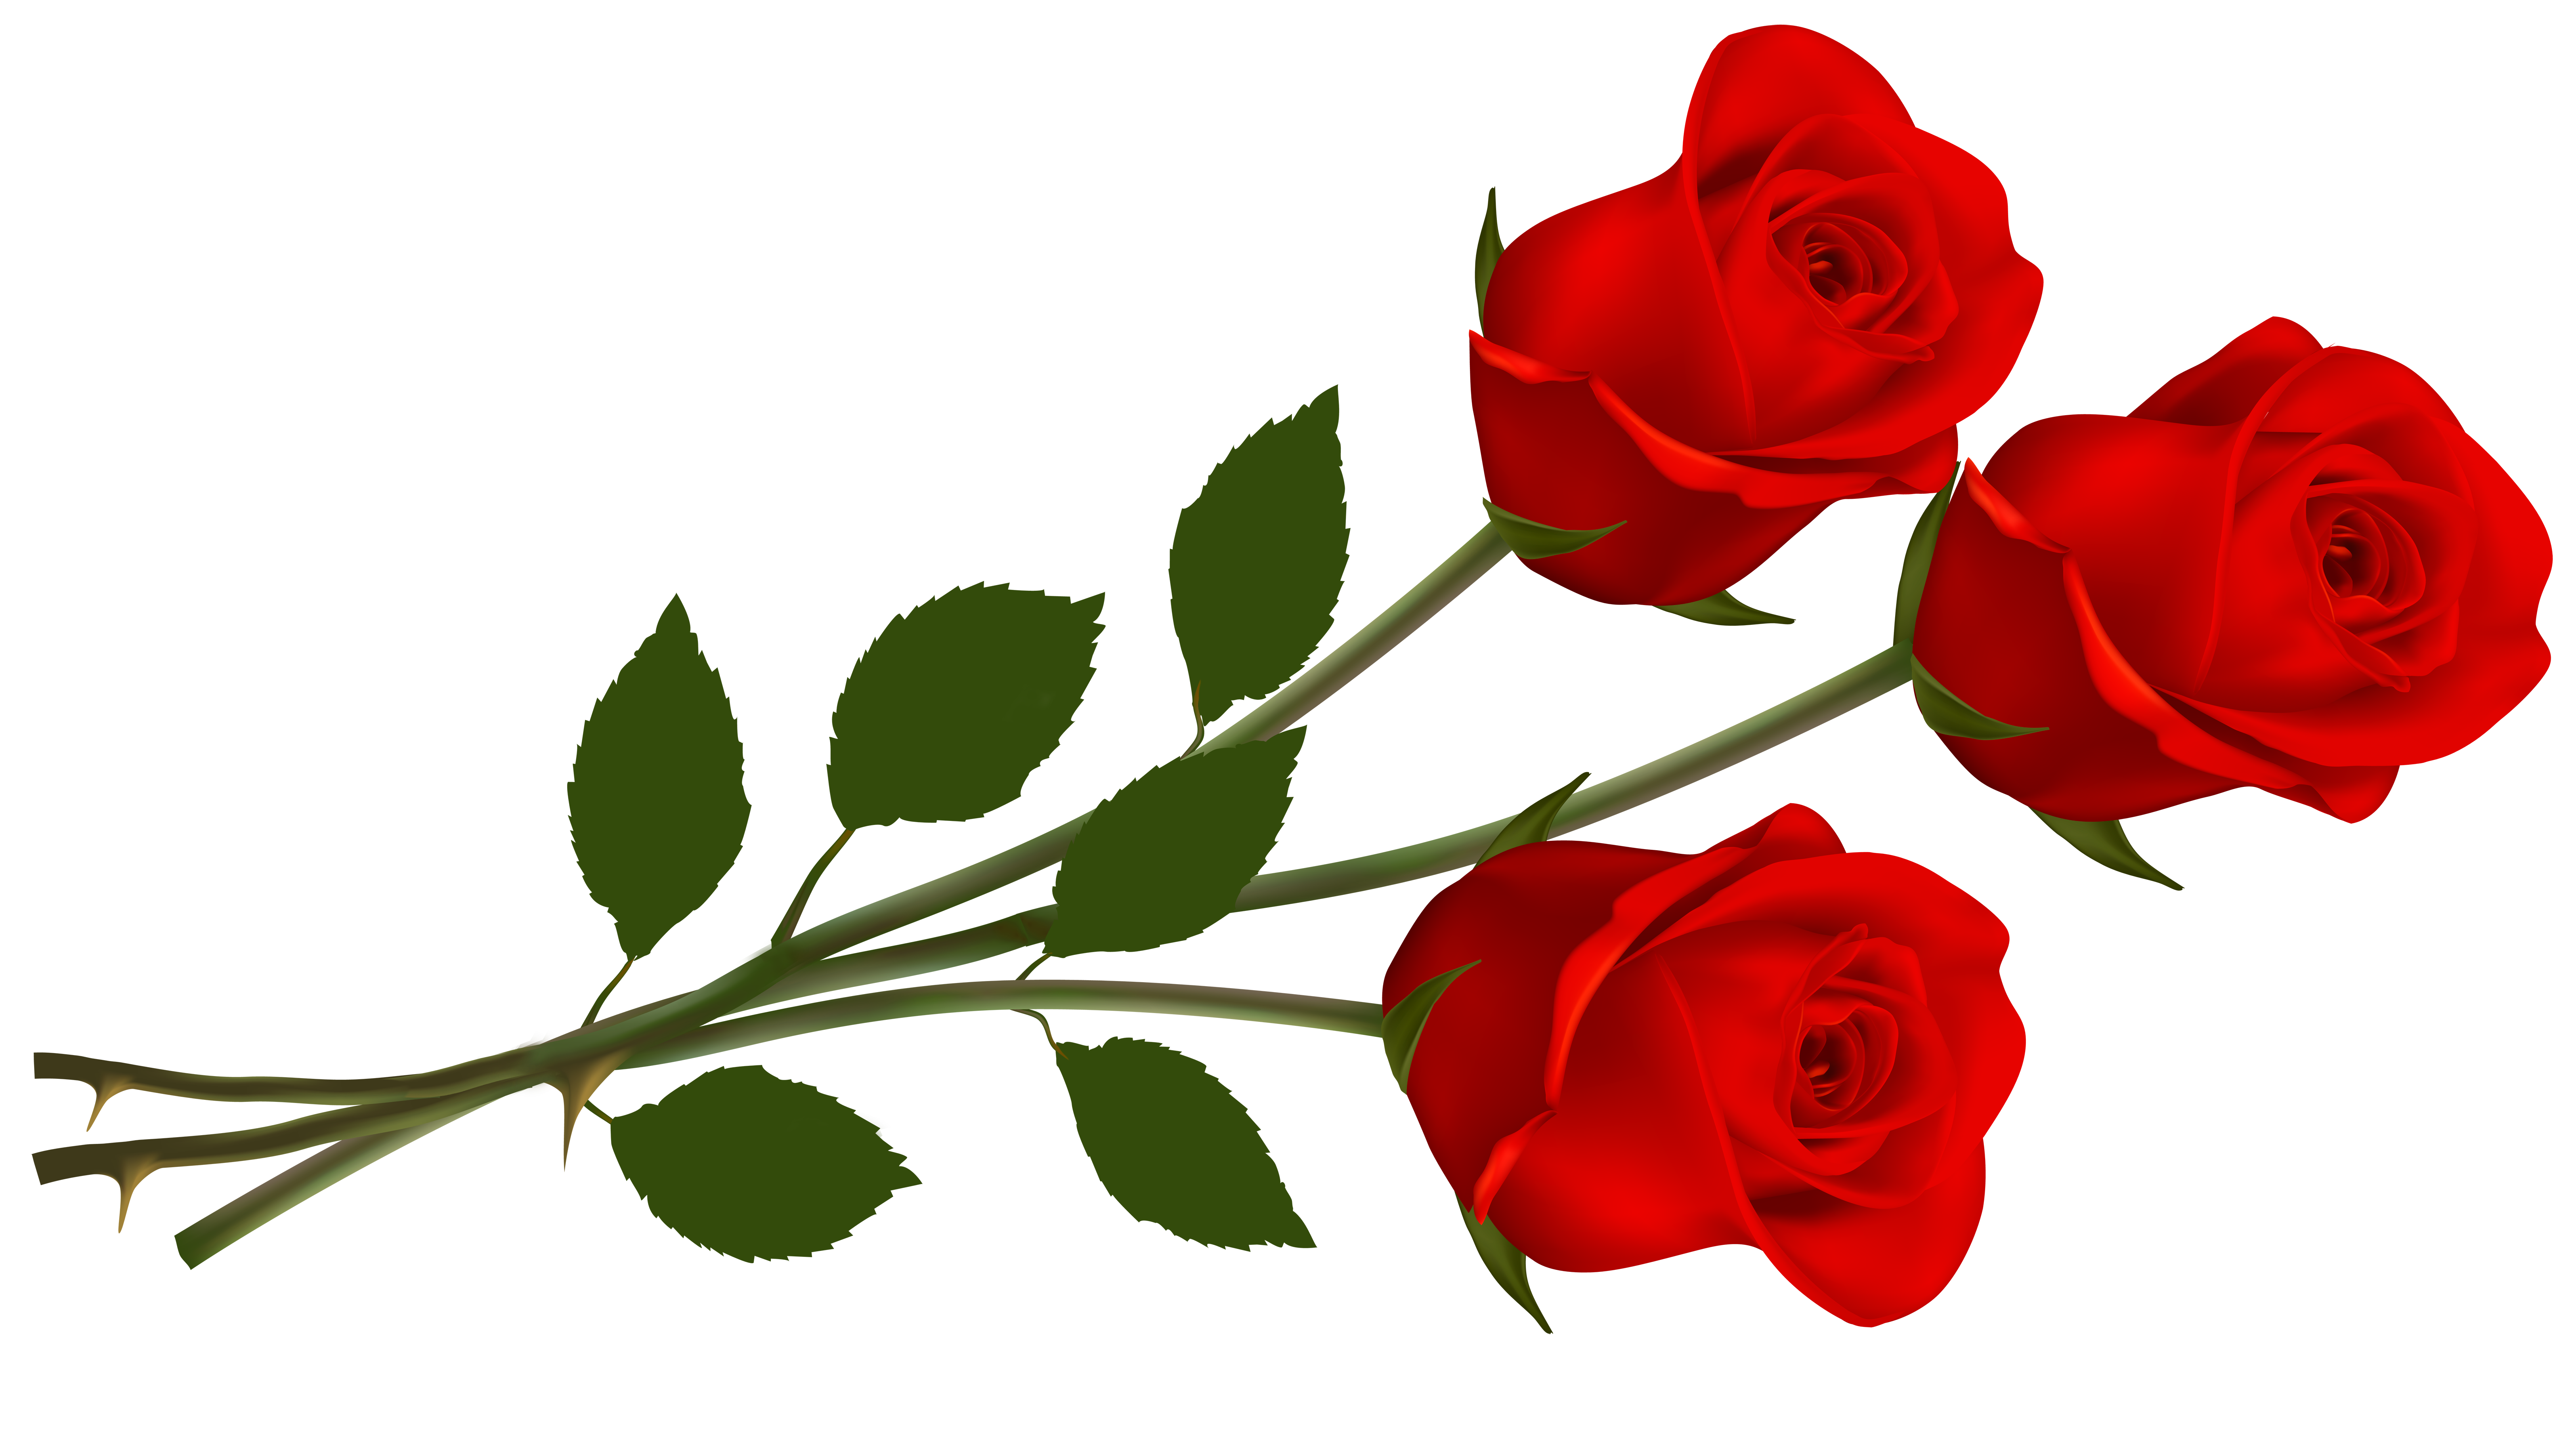 Single red rose clipart freeuse download Free Roses Images Free, Download Free Clip Art, Free Clip Art on ... freeuse download